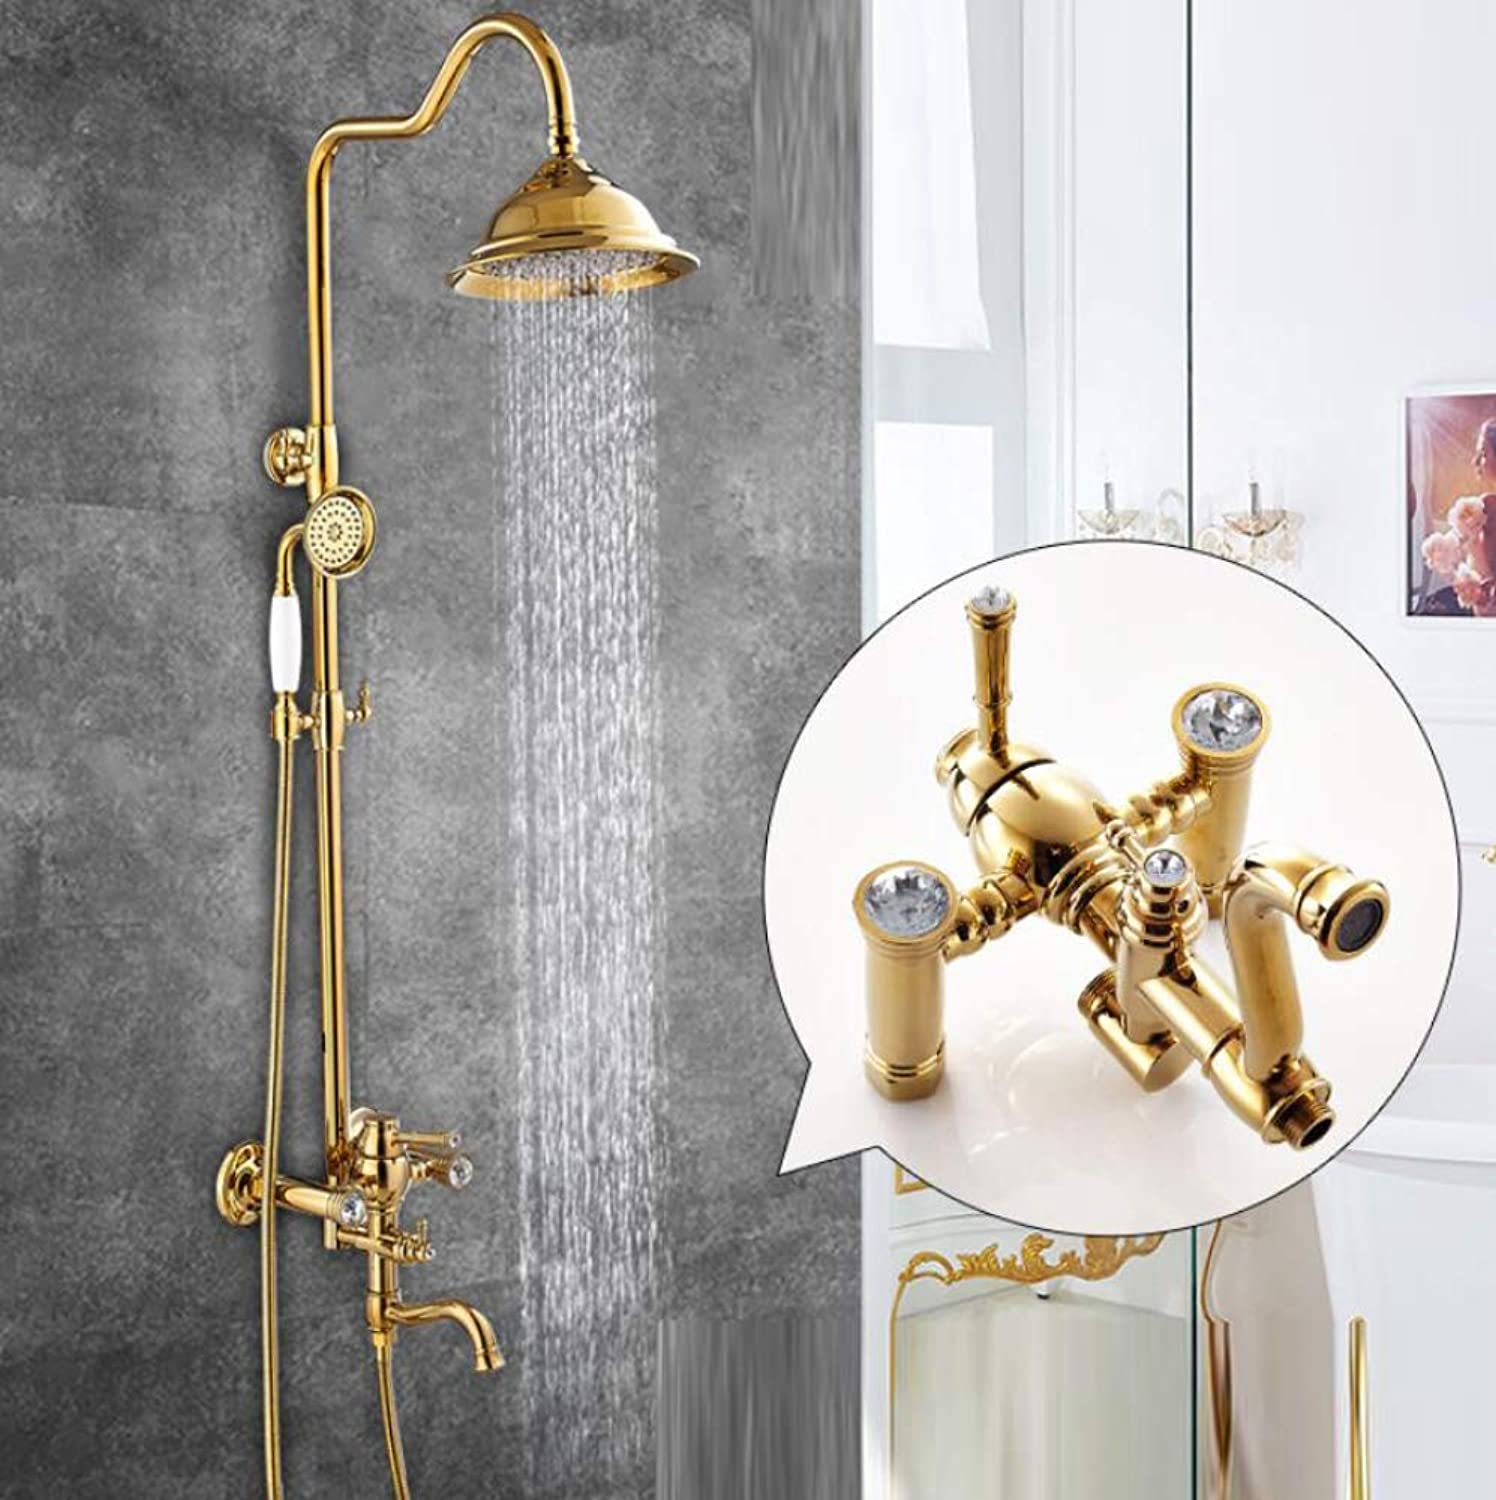 LWUDI Shower Systems With Rain Shower And Handheld, Adjustable Lifting Bronze Shower Rod Rainfall Shower Combo Set,A2